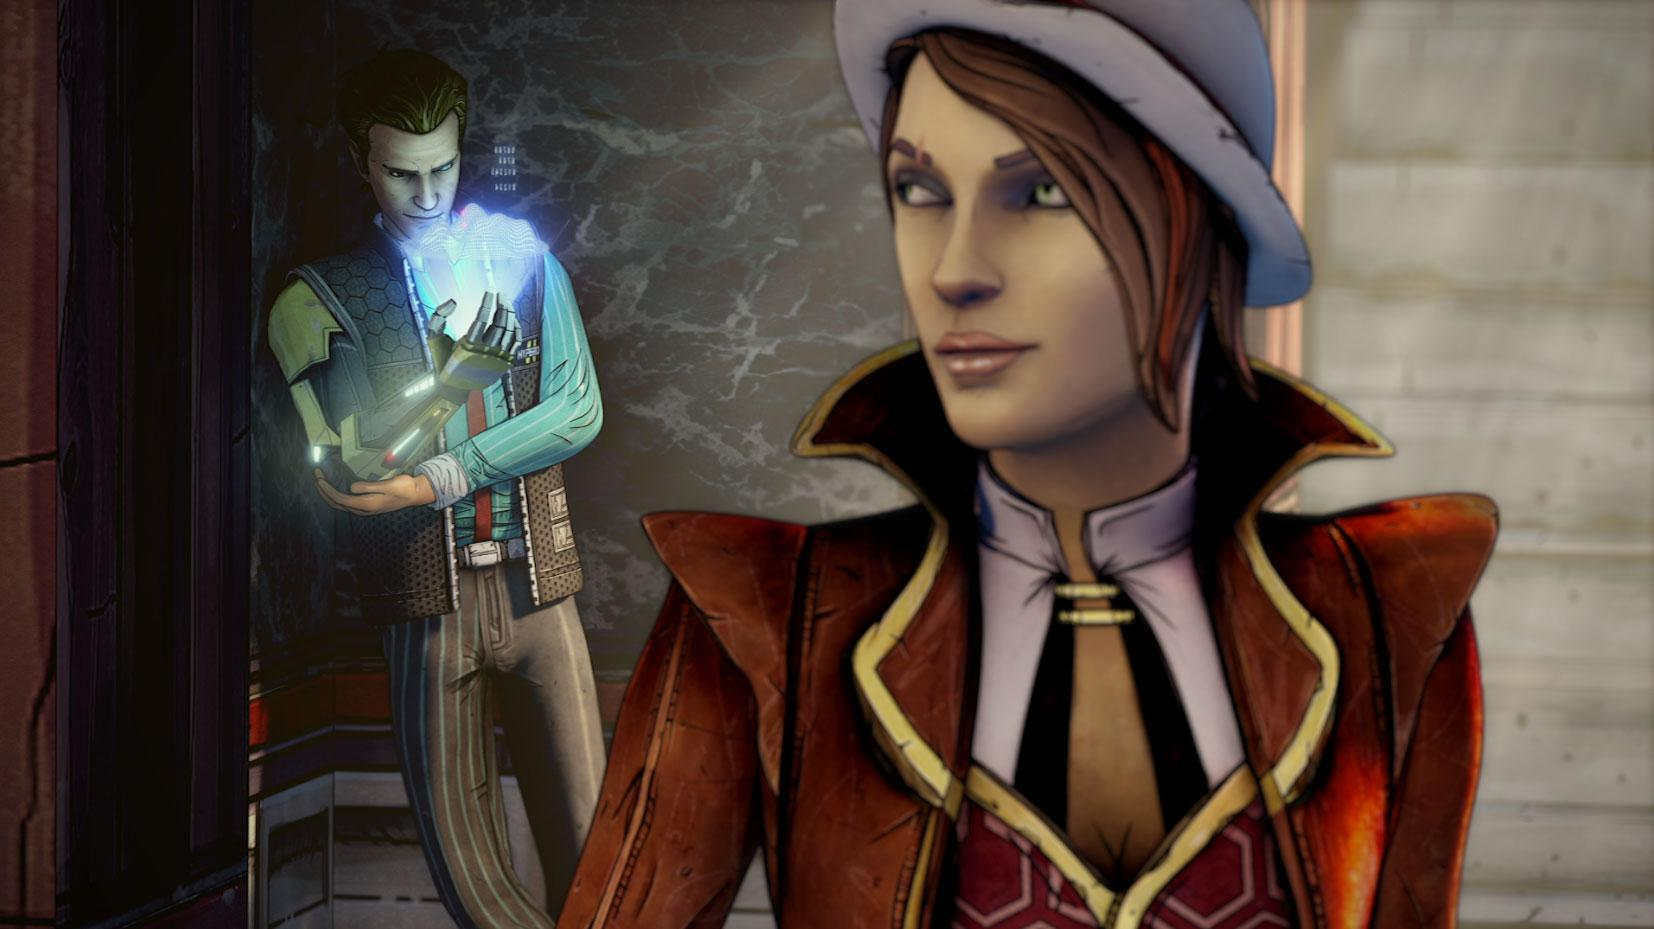 Tales from the Borderlands stars two lying, greedy Pandorians (update)